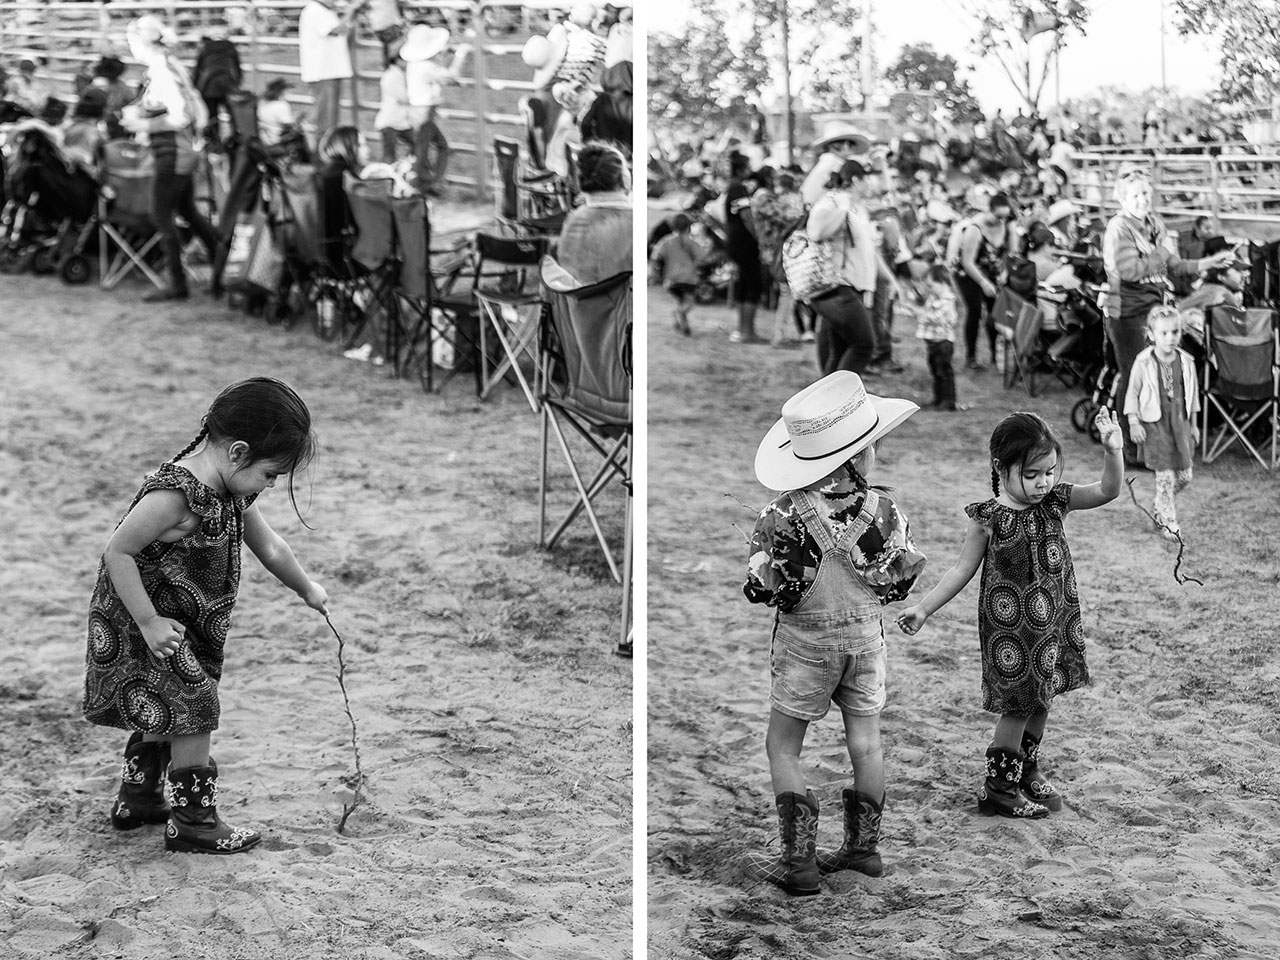 Young girls wearing cowboy boots drawing in the dirt with a stick at the Broome Rodeo